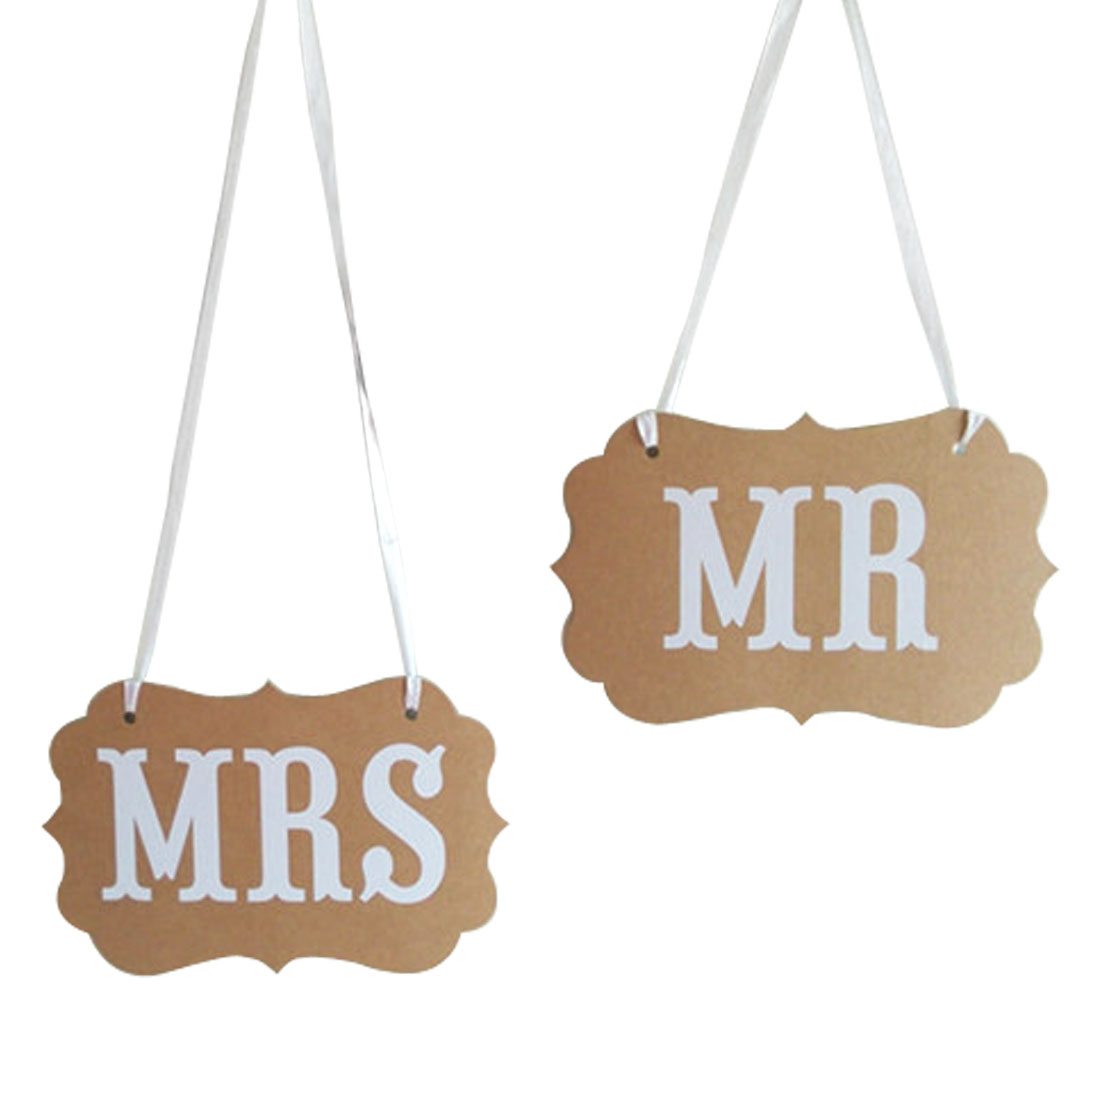 MR MRS Letter Wedding Party Ornament Photo Prop Bunting Banner Set 2 in 1